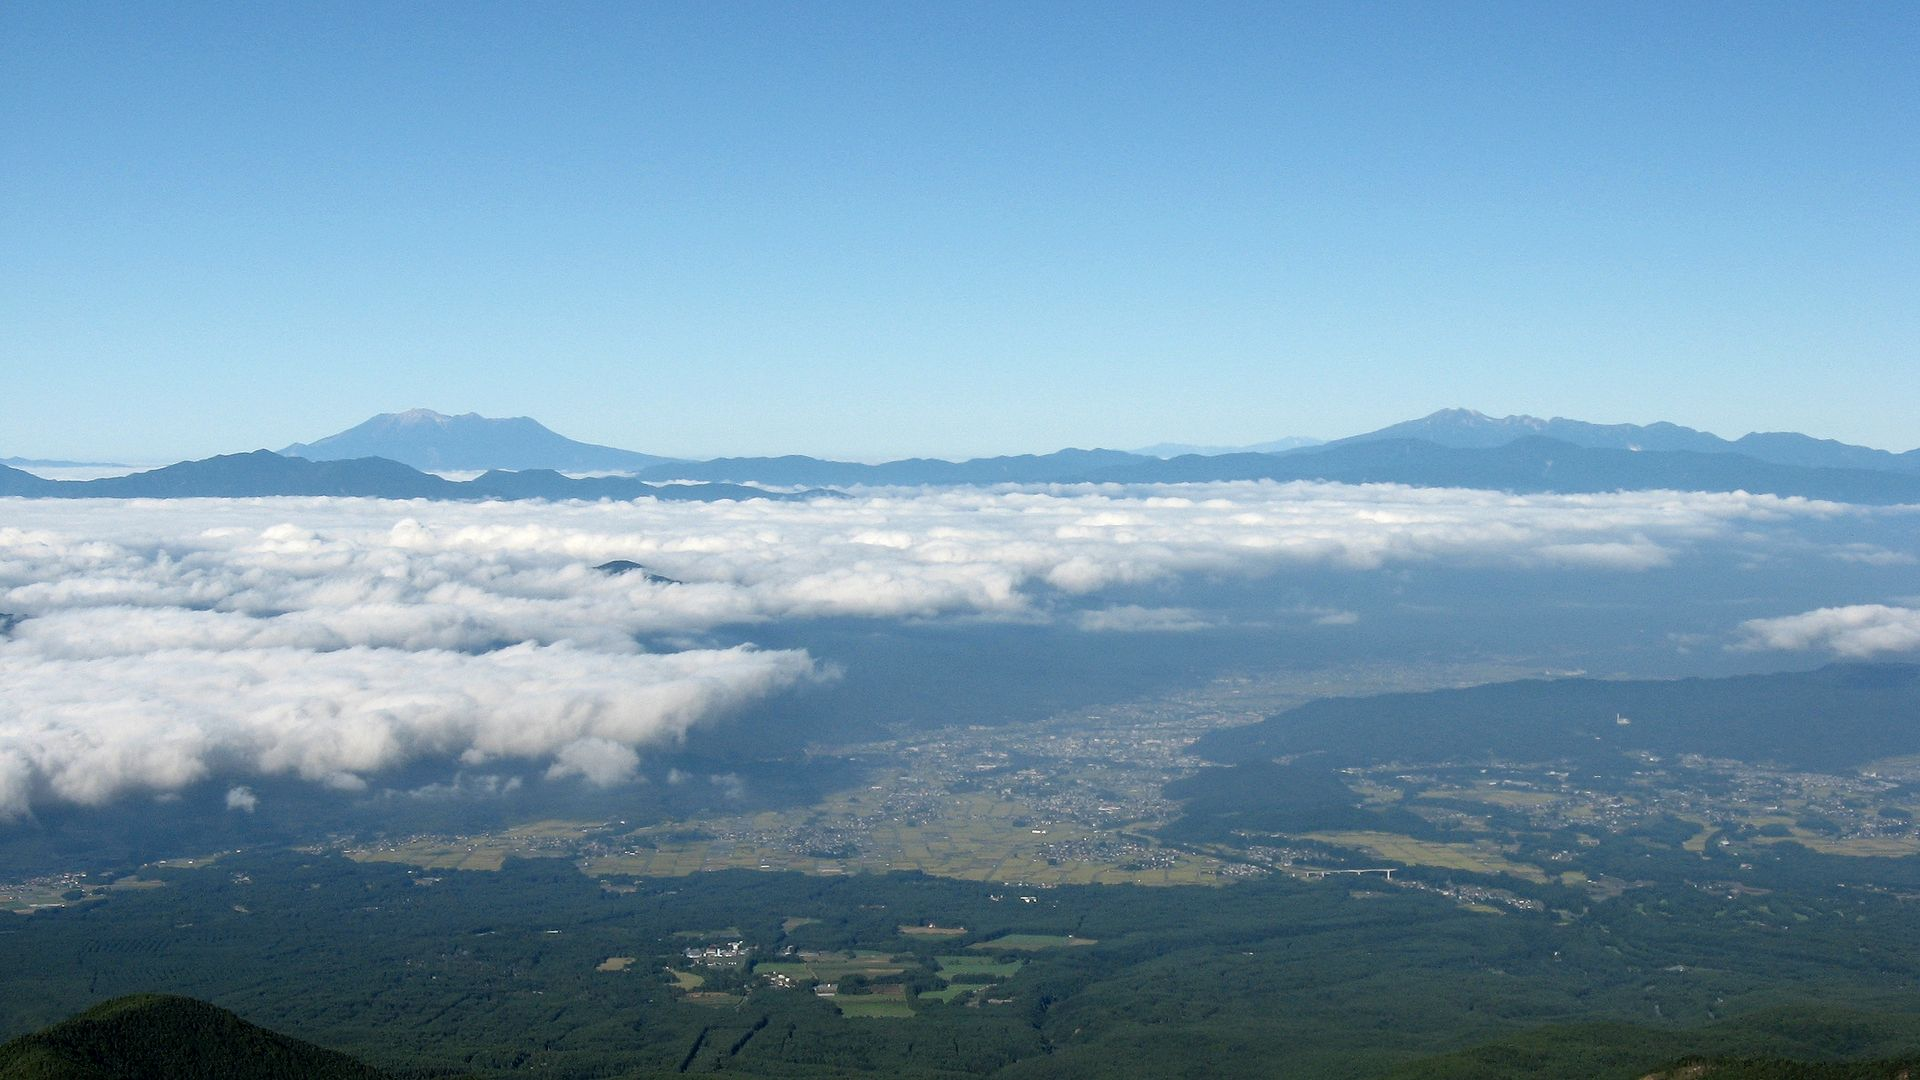 Mt_Ontake_and_Mt_Norikuradake_from_Mt_Yatsugatake_01.jpg